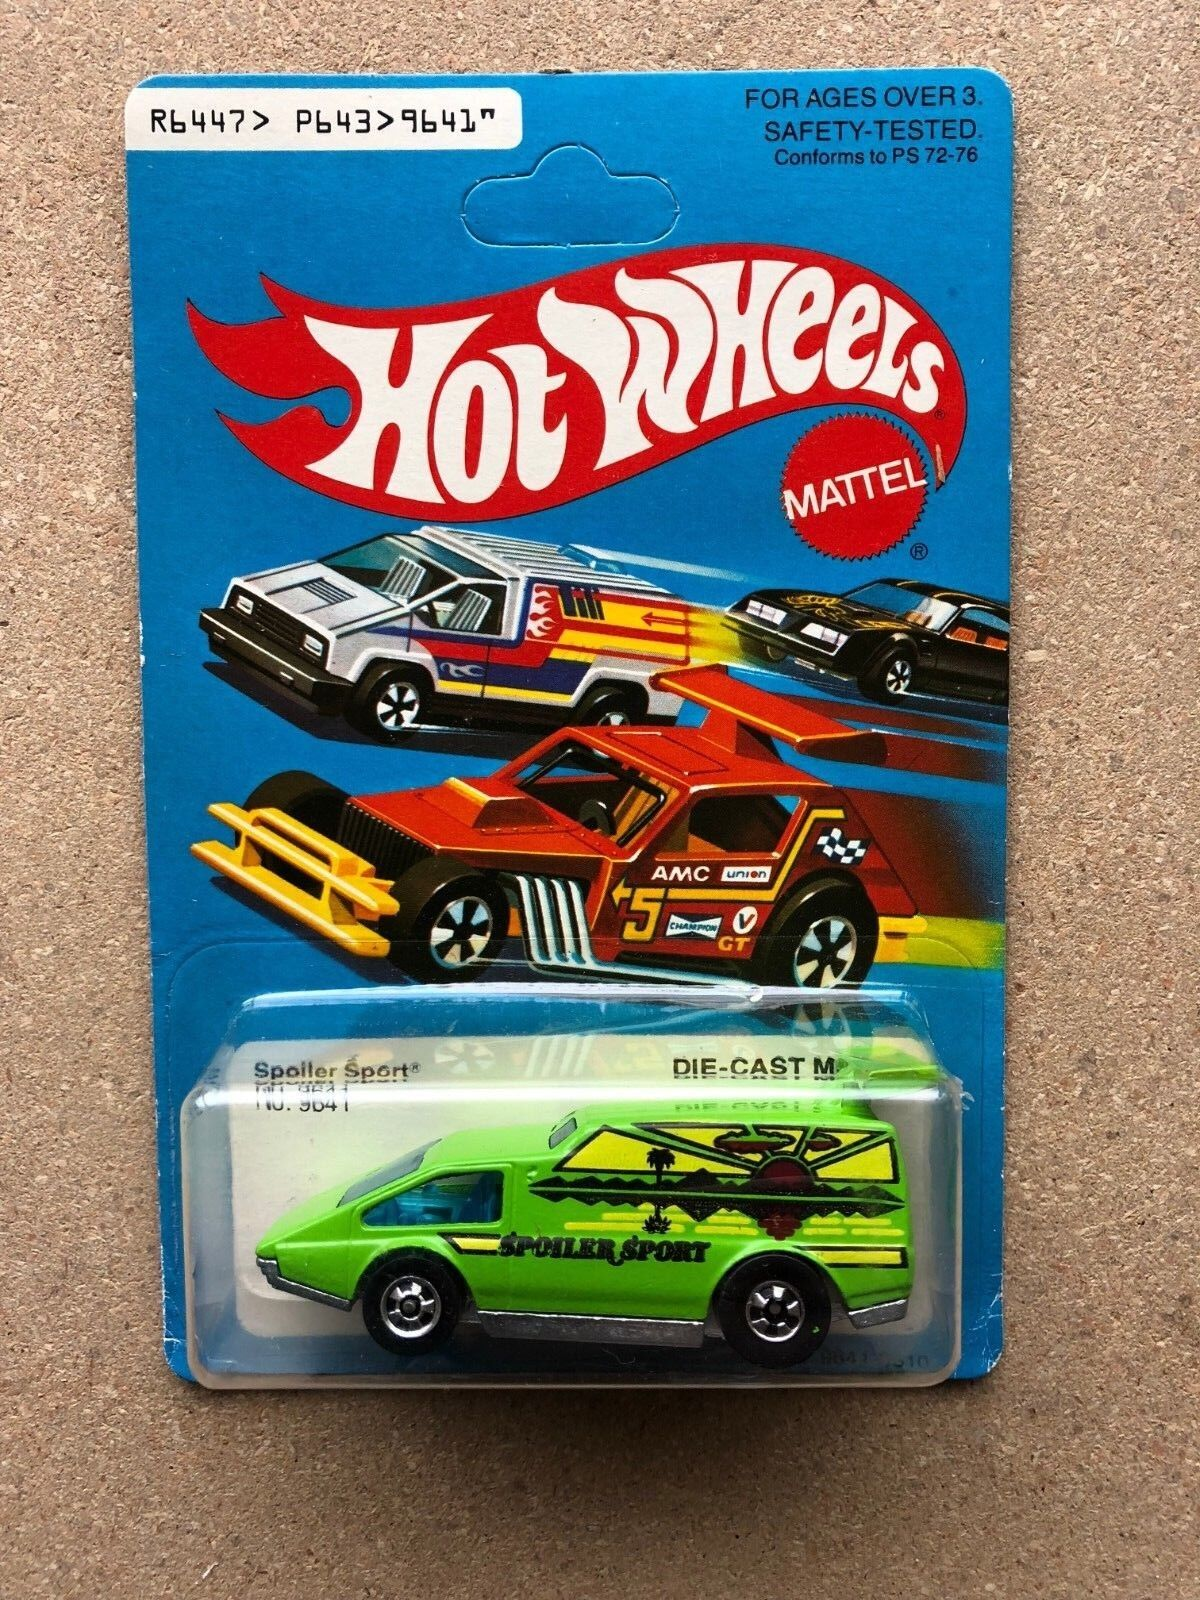 HOT WHEELS 1979 MATTEL HONG KONG GREEN SPOILER SPORT VAN UNPUNCHED